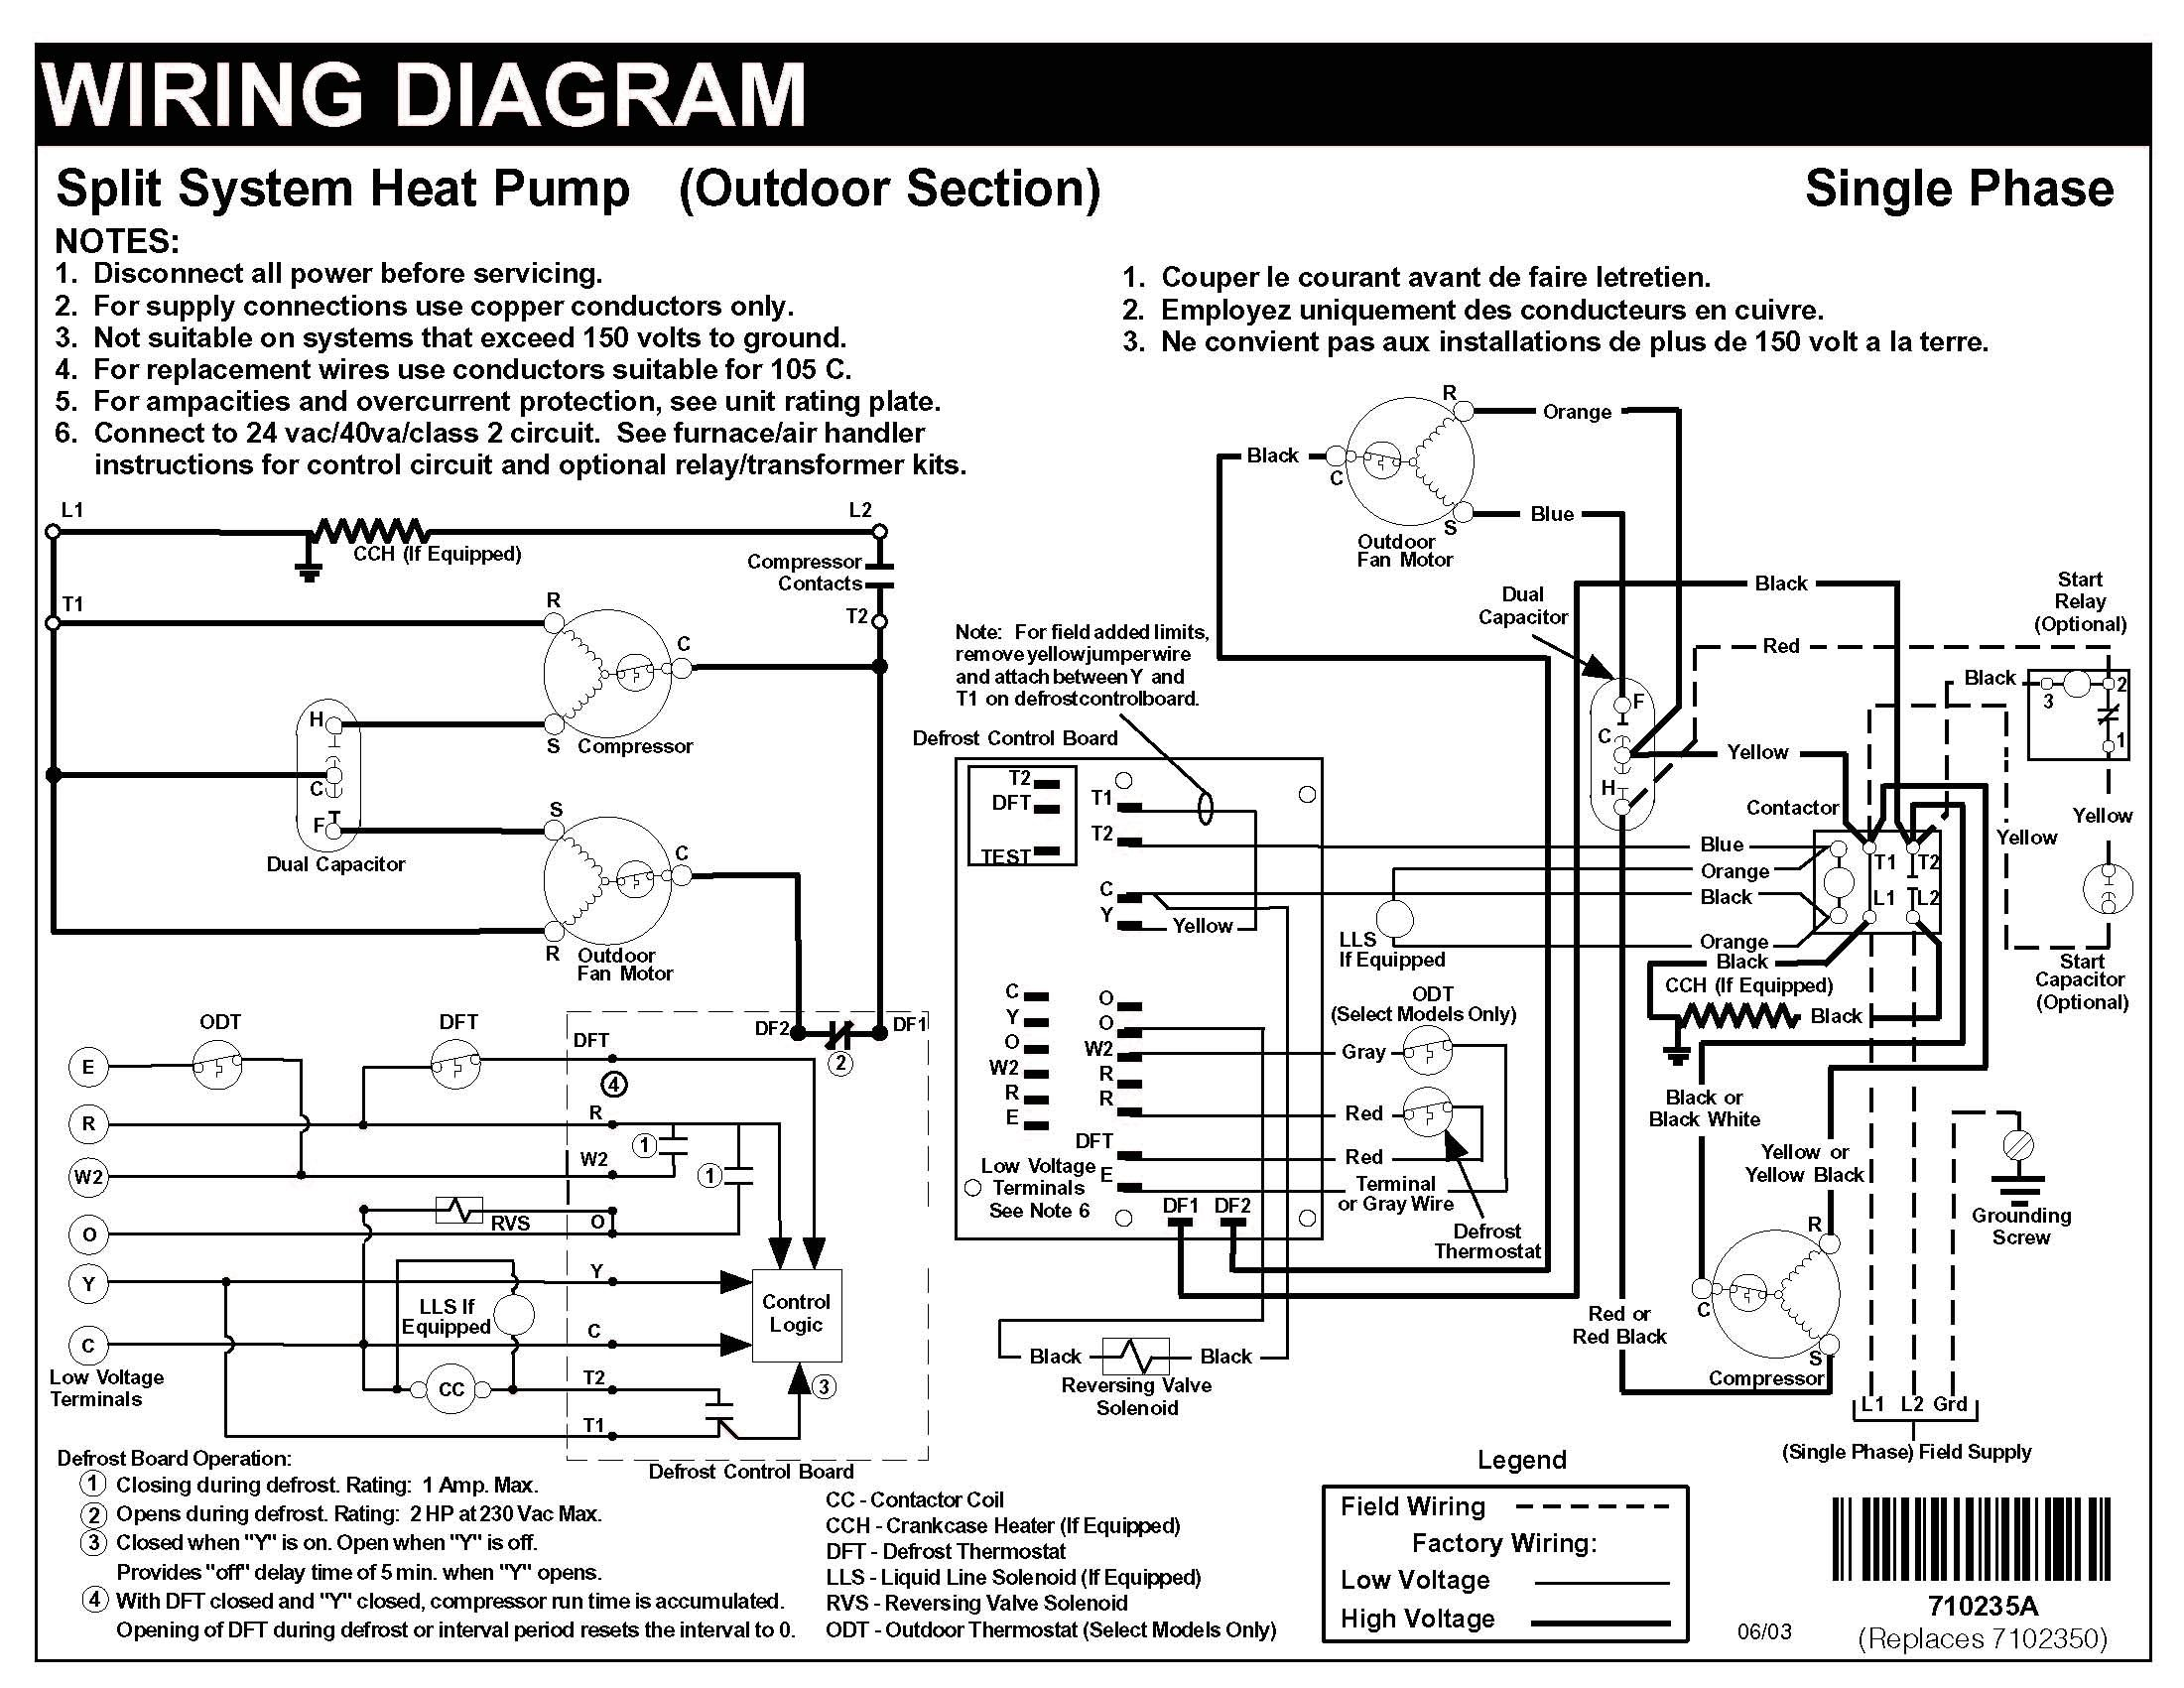 nordyne heat pump wiring diagram nordyne wiring diagrams online